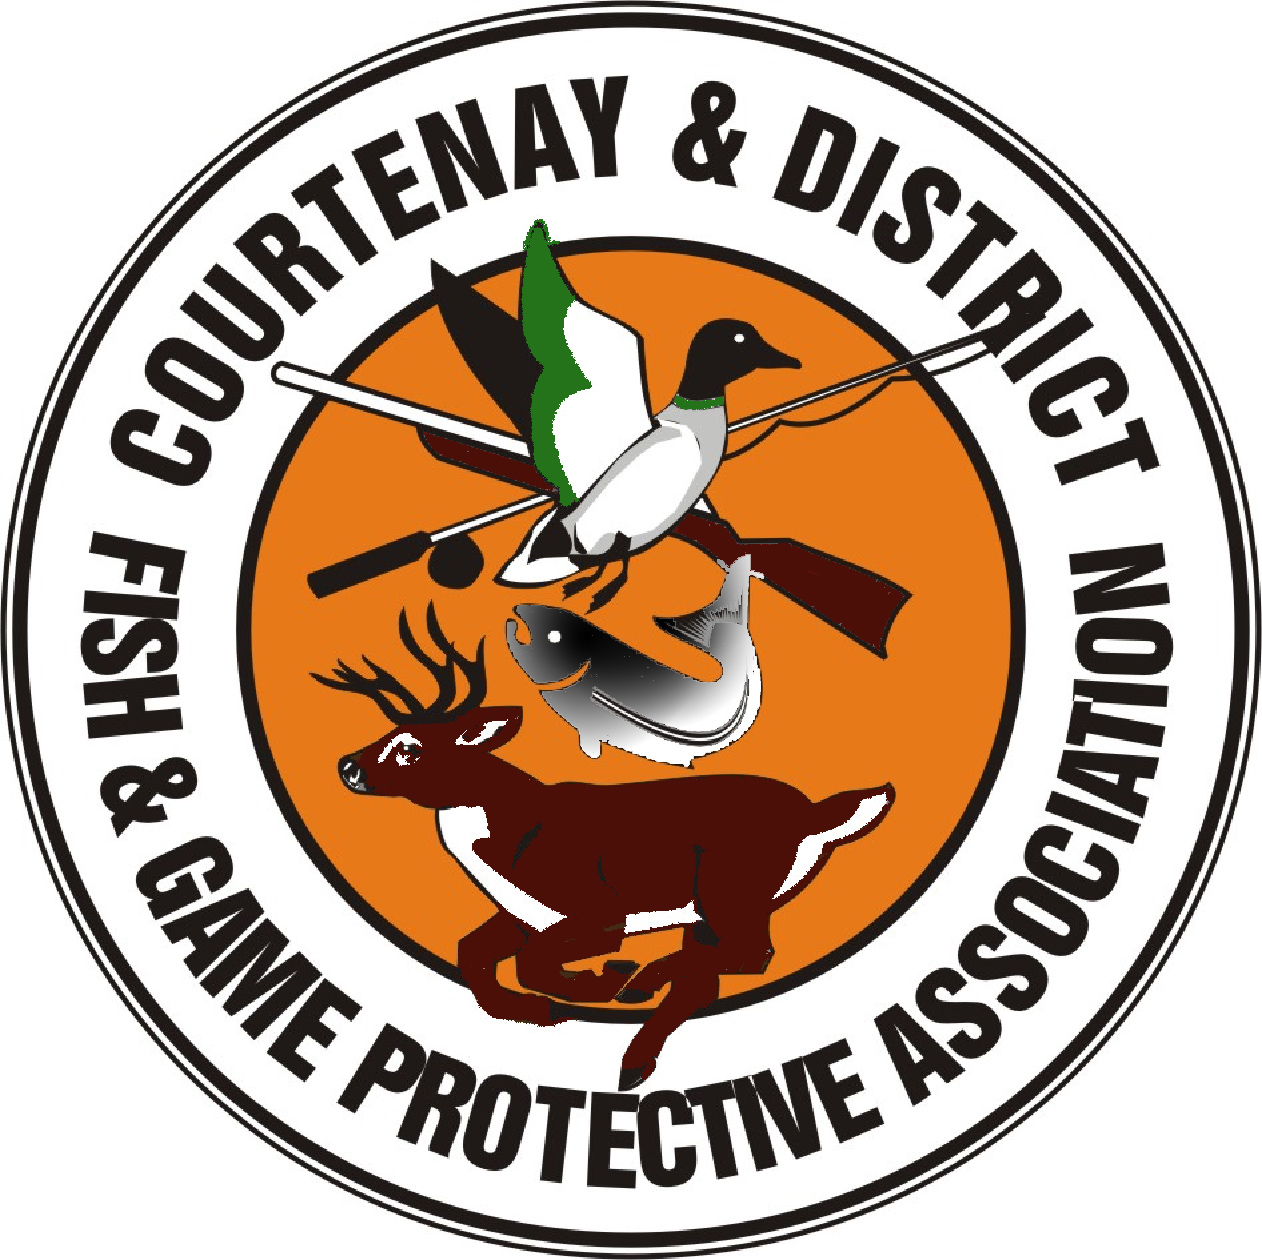 Courtenay and District Fish & Game: Spring Gun Show